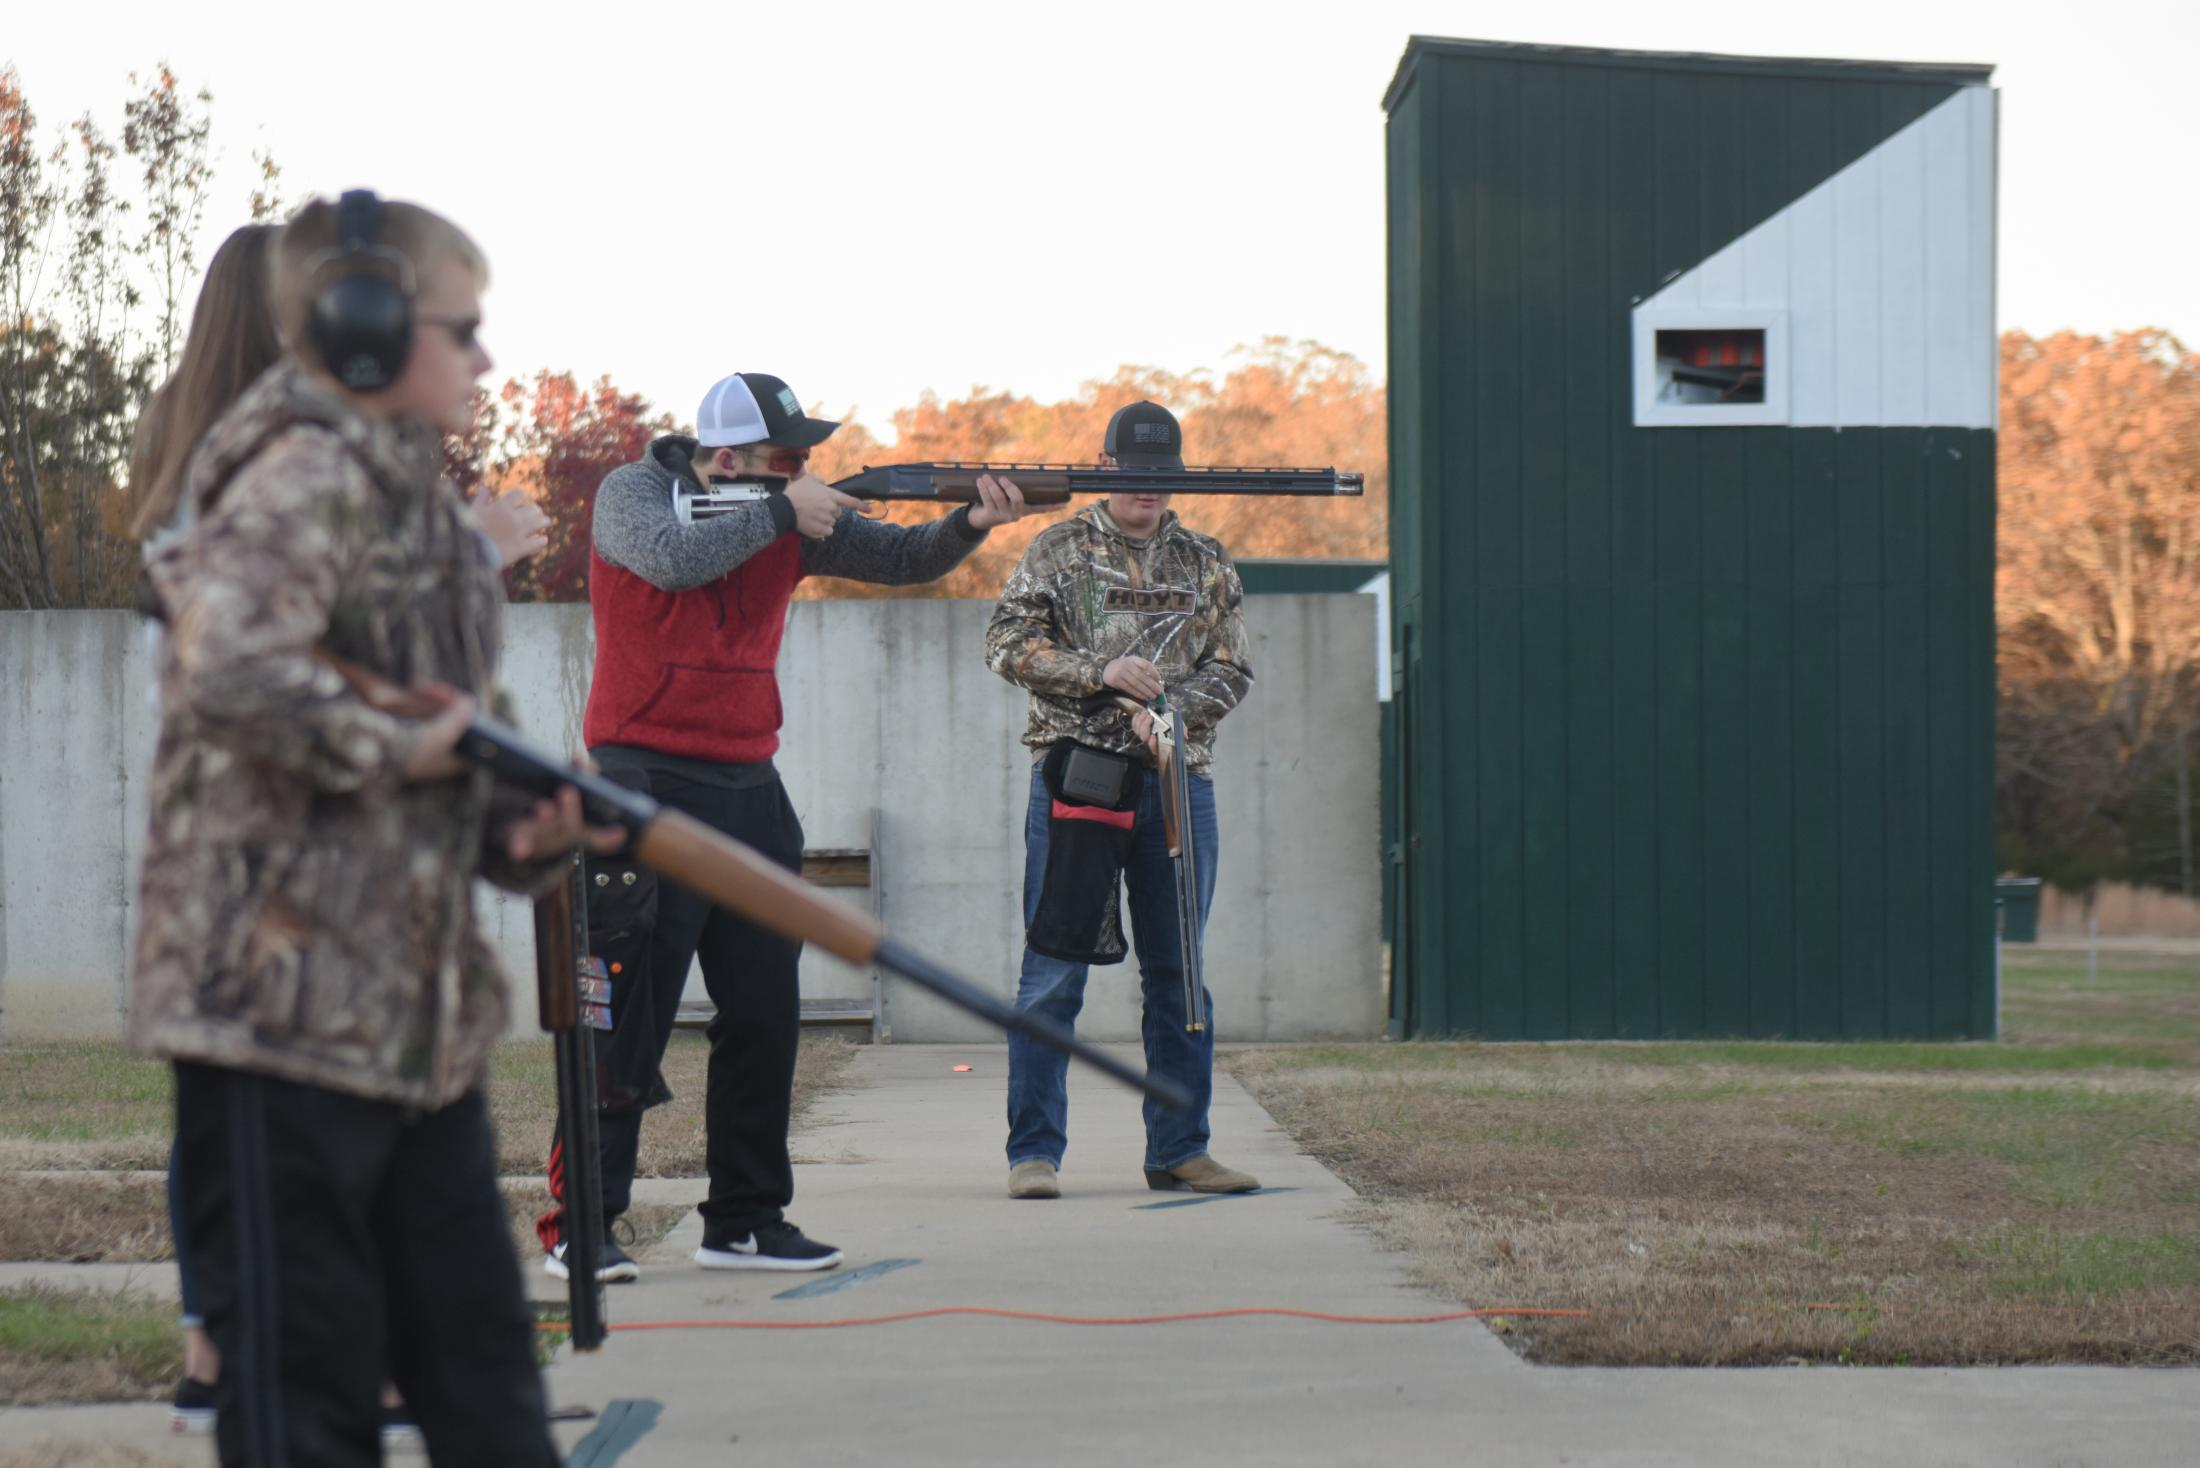 Garret Cooper, 15, center, raises his shotgun during a round of trap shooting at the Poplar Bluff Gun Club in Poplar Bluff, Missouri on November 9, 2019. The Poplar Bluff High School team is one of nearly 80 school-supported organizations in the state of Missouri that received grants from the NRA Foundation from 2010 to 2017.